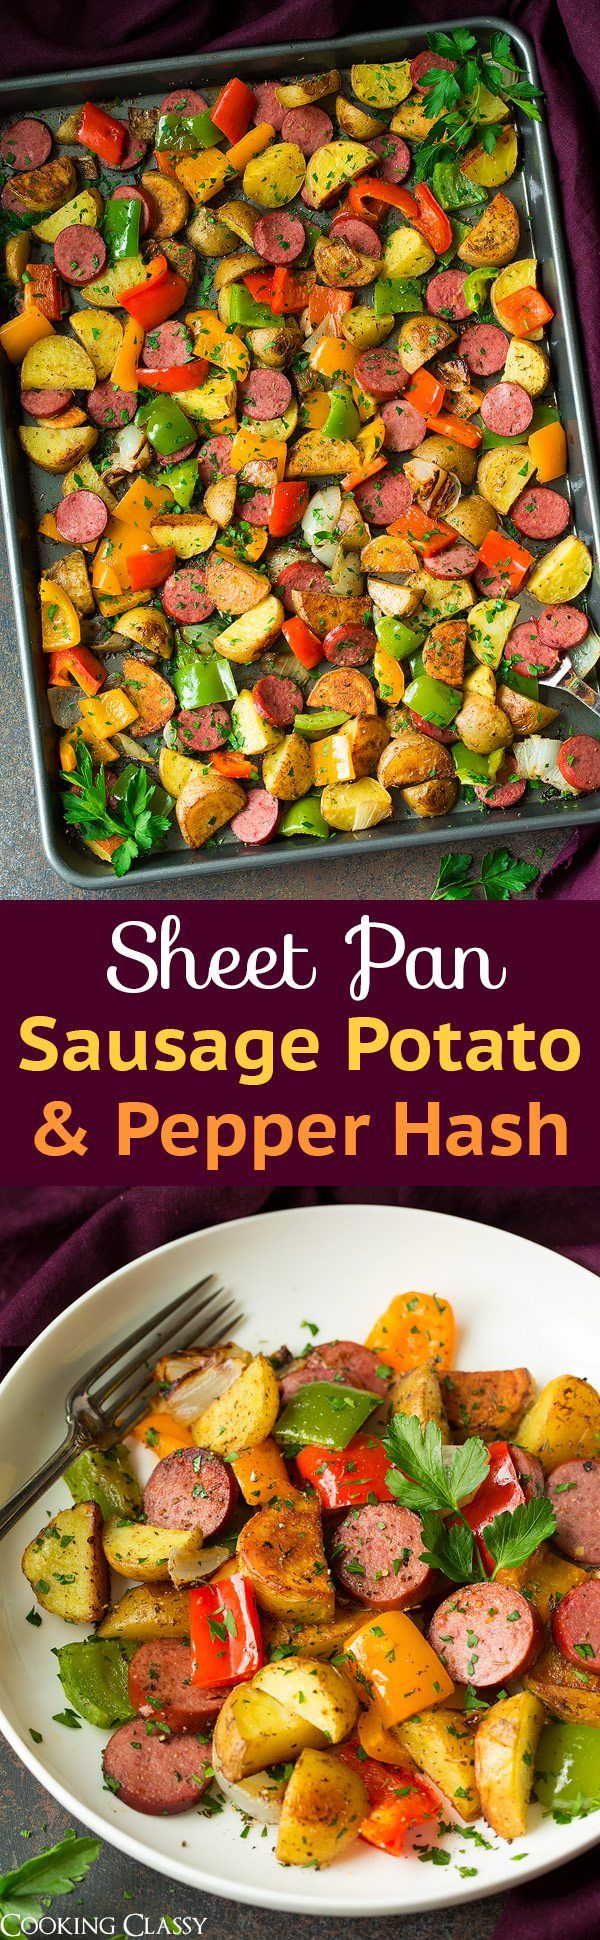 Sheet Pan Turkey Sausage, Potato and Pepper Hash #sausagepotatoes